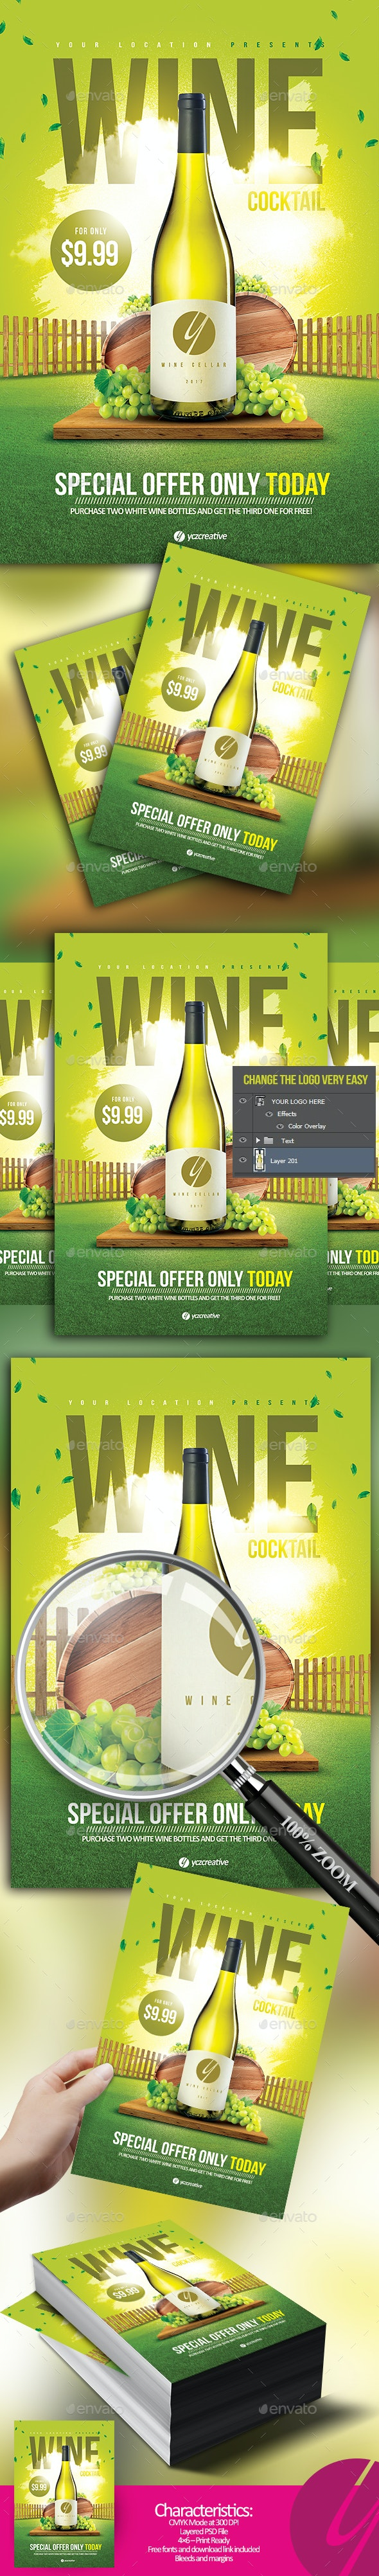 White Wine Cocktail Flyer - Events Flyers